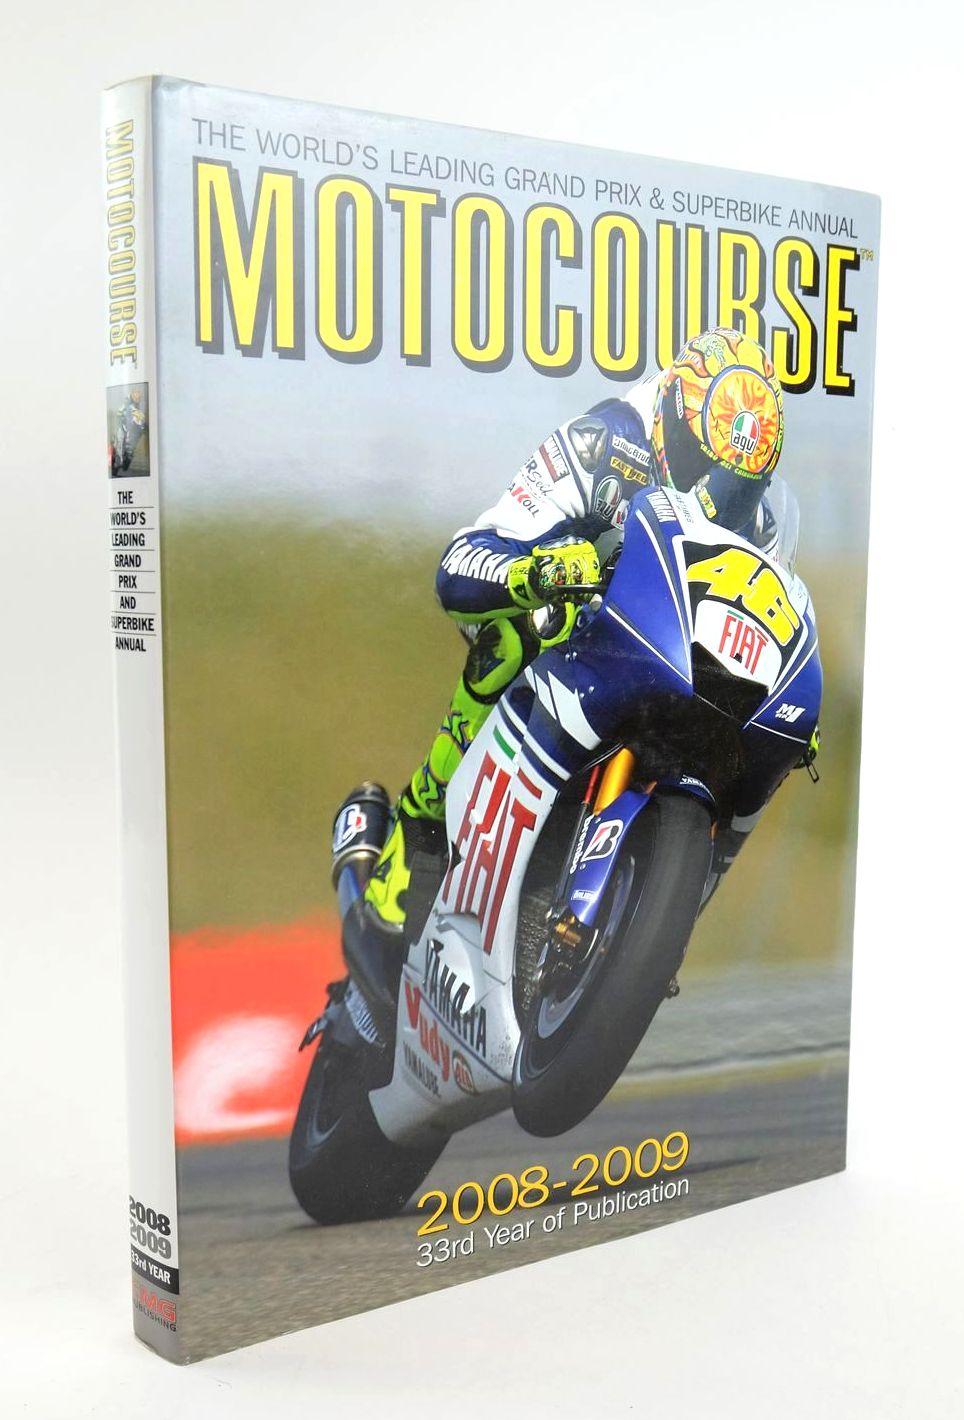 Photo of MOTOCOURSE 2008-2009 published by CMG Publishing (STOCK CODE: 1319236)  for sale by Stella & Rose's Books